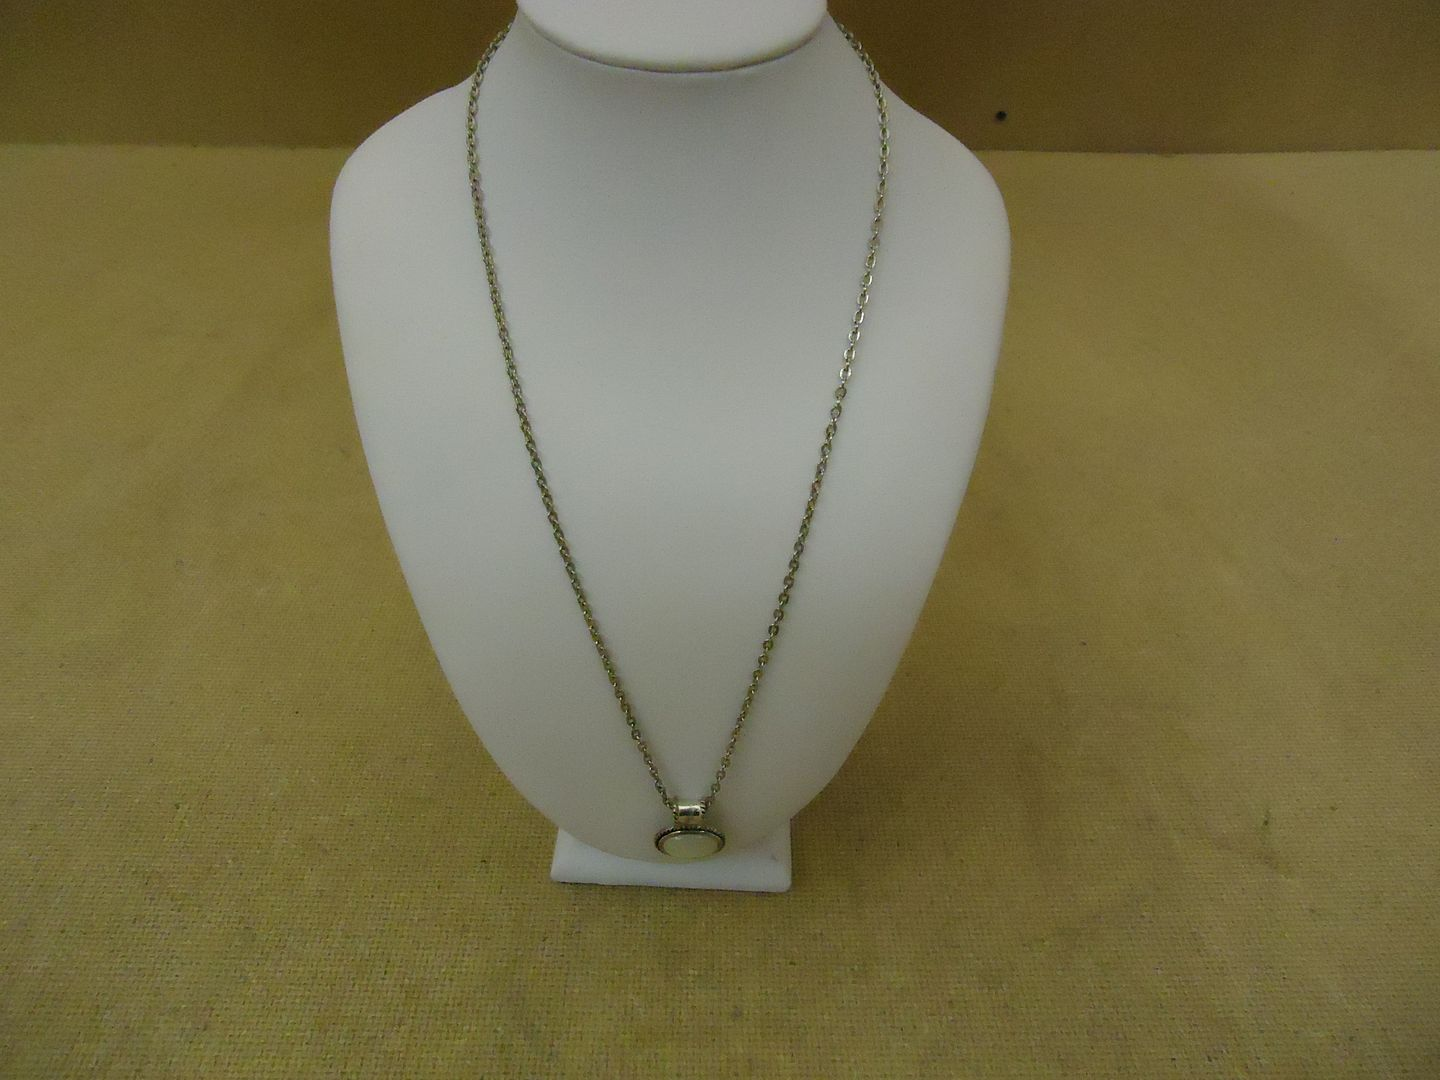 lm7410 120212-784n Designer Fashion Necklace 20in L Drop/Dangle Chain Metal Female Adult Silver